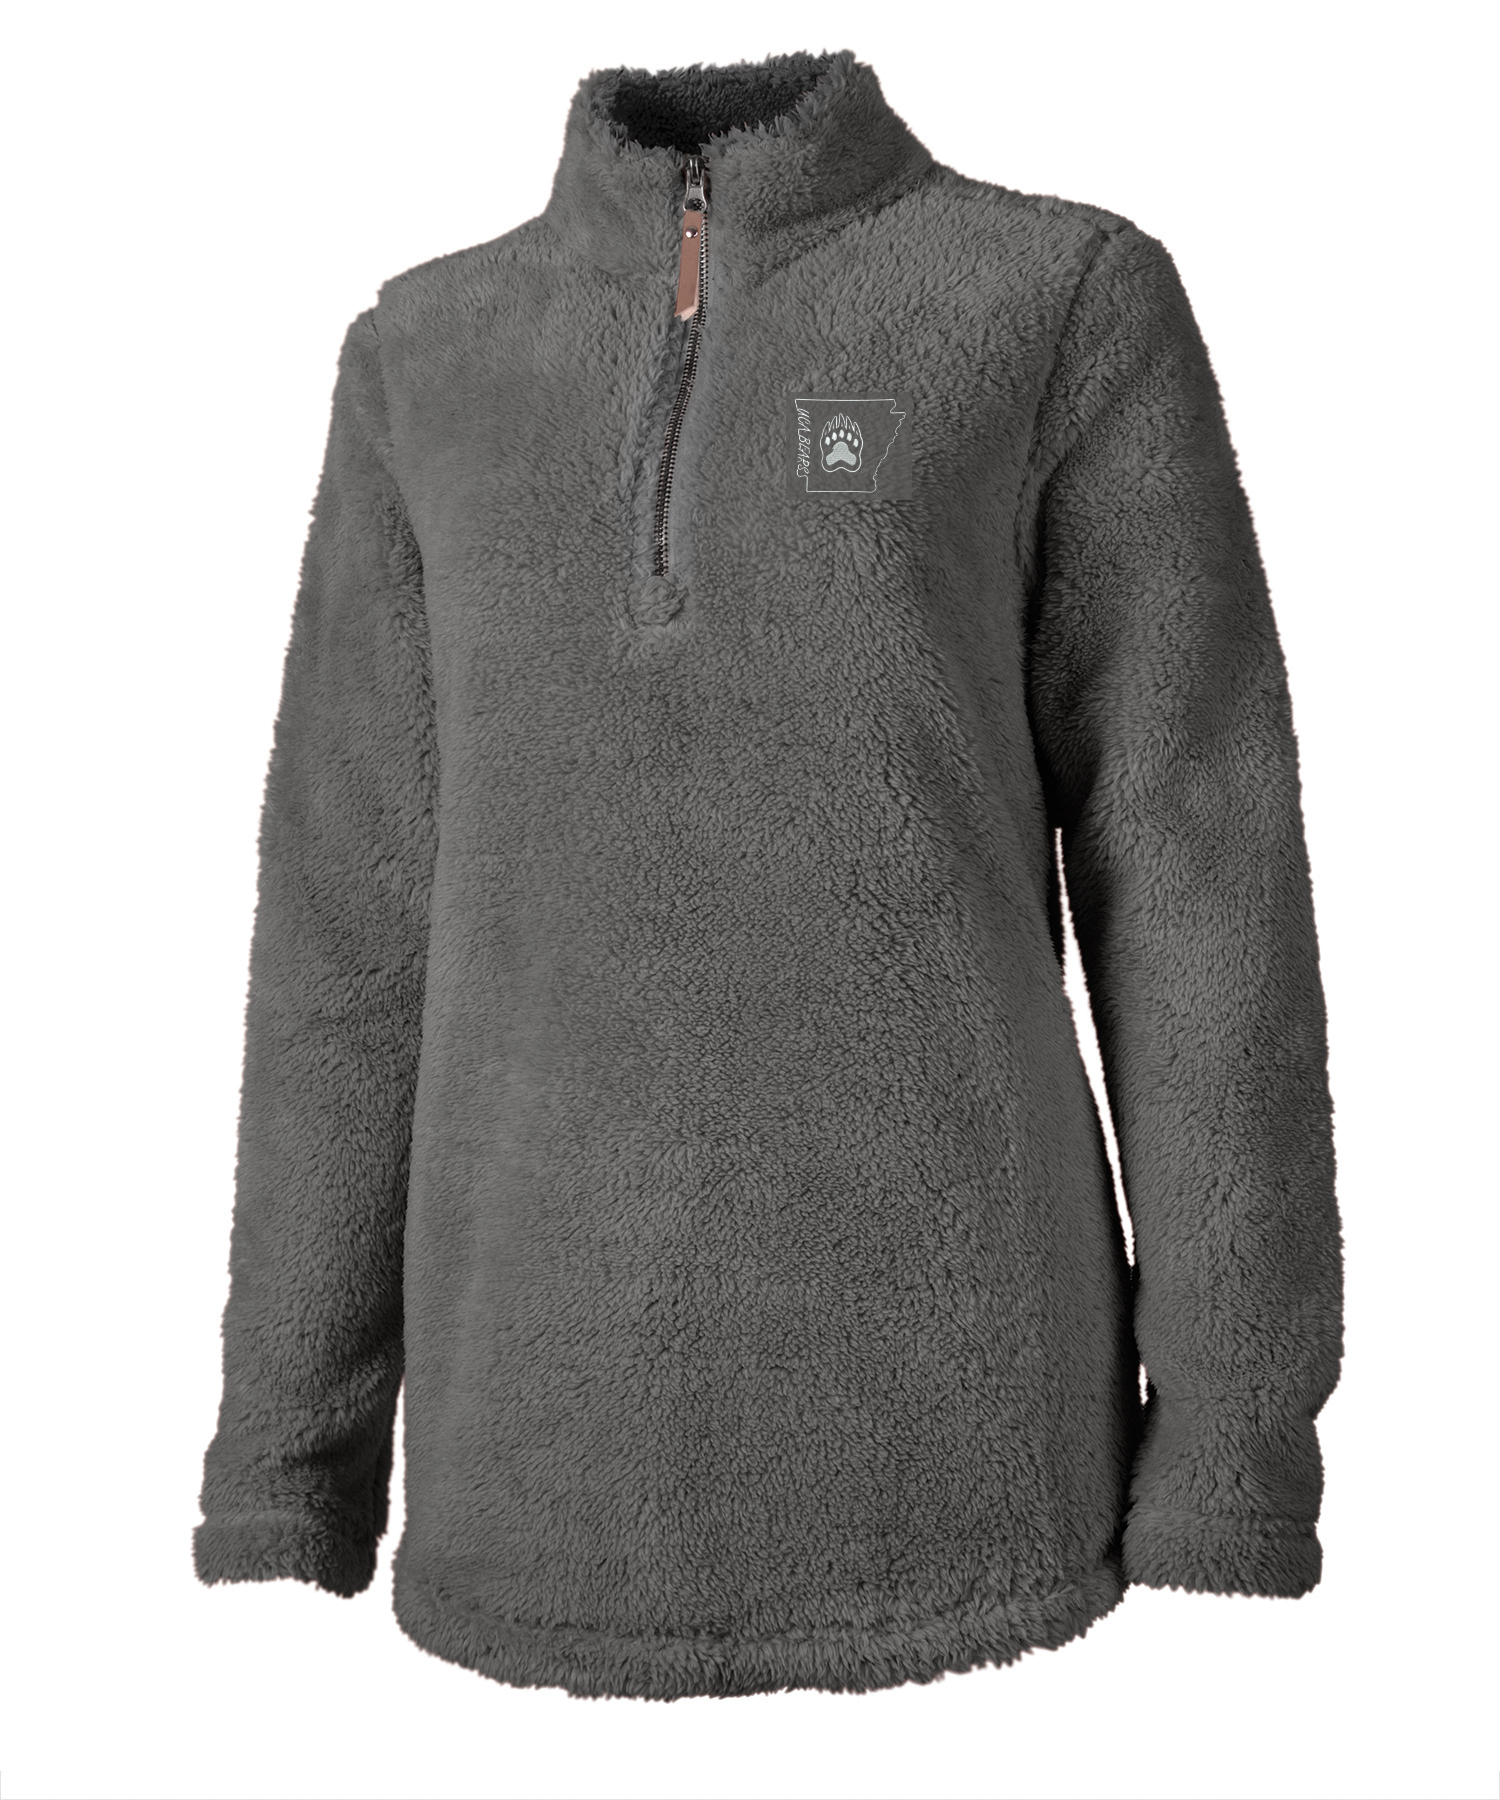 Newport Fleece Pullover